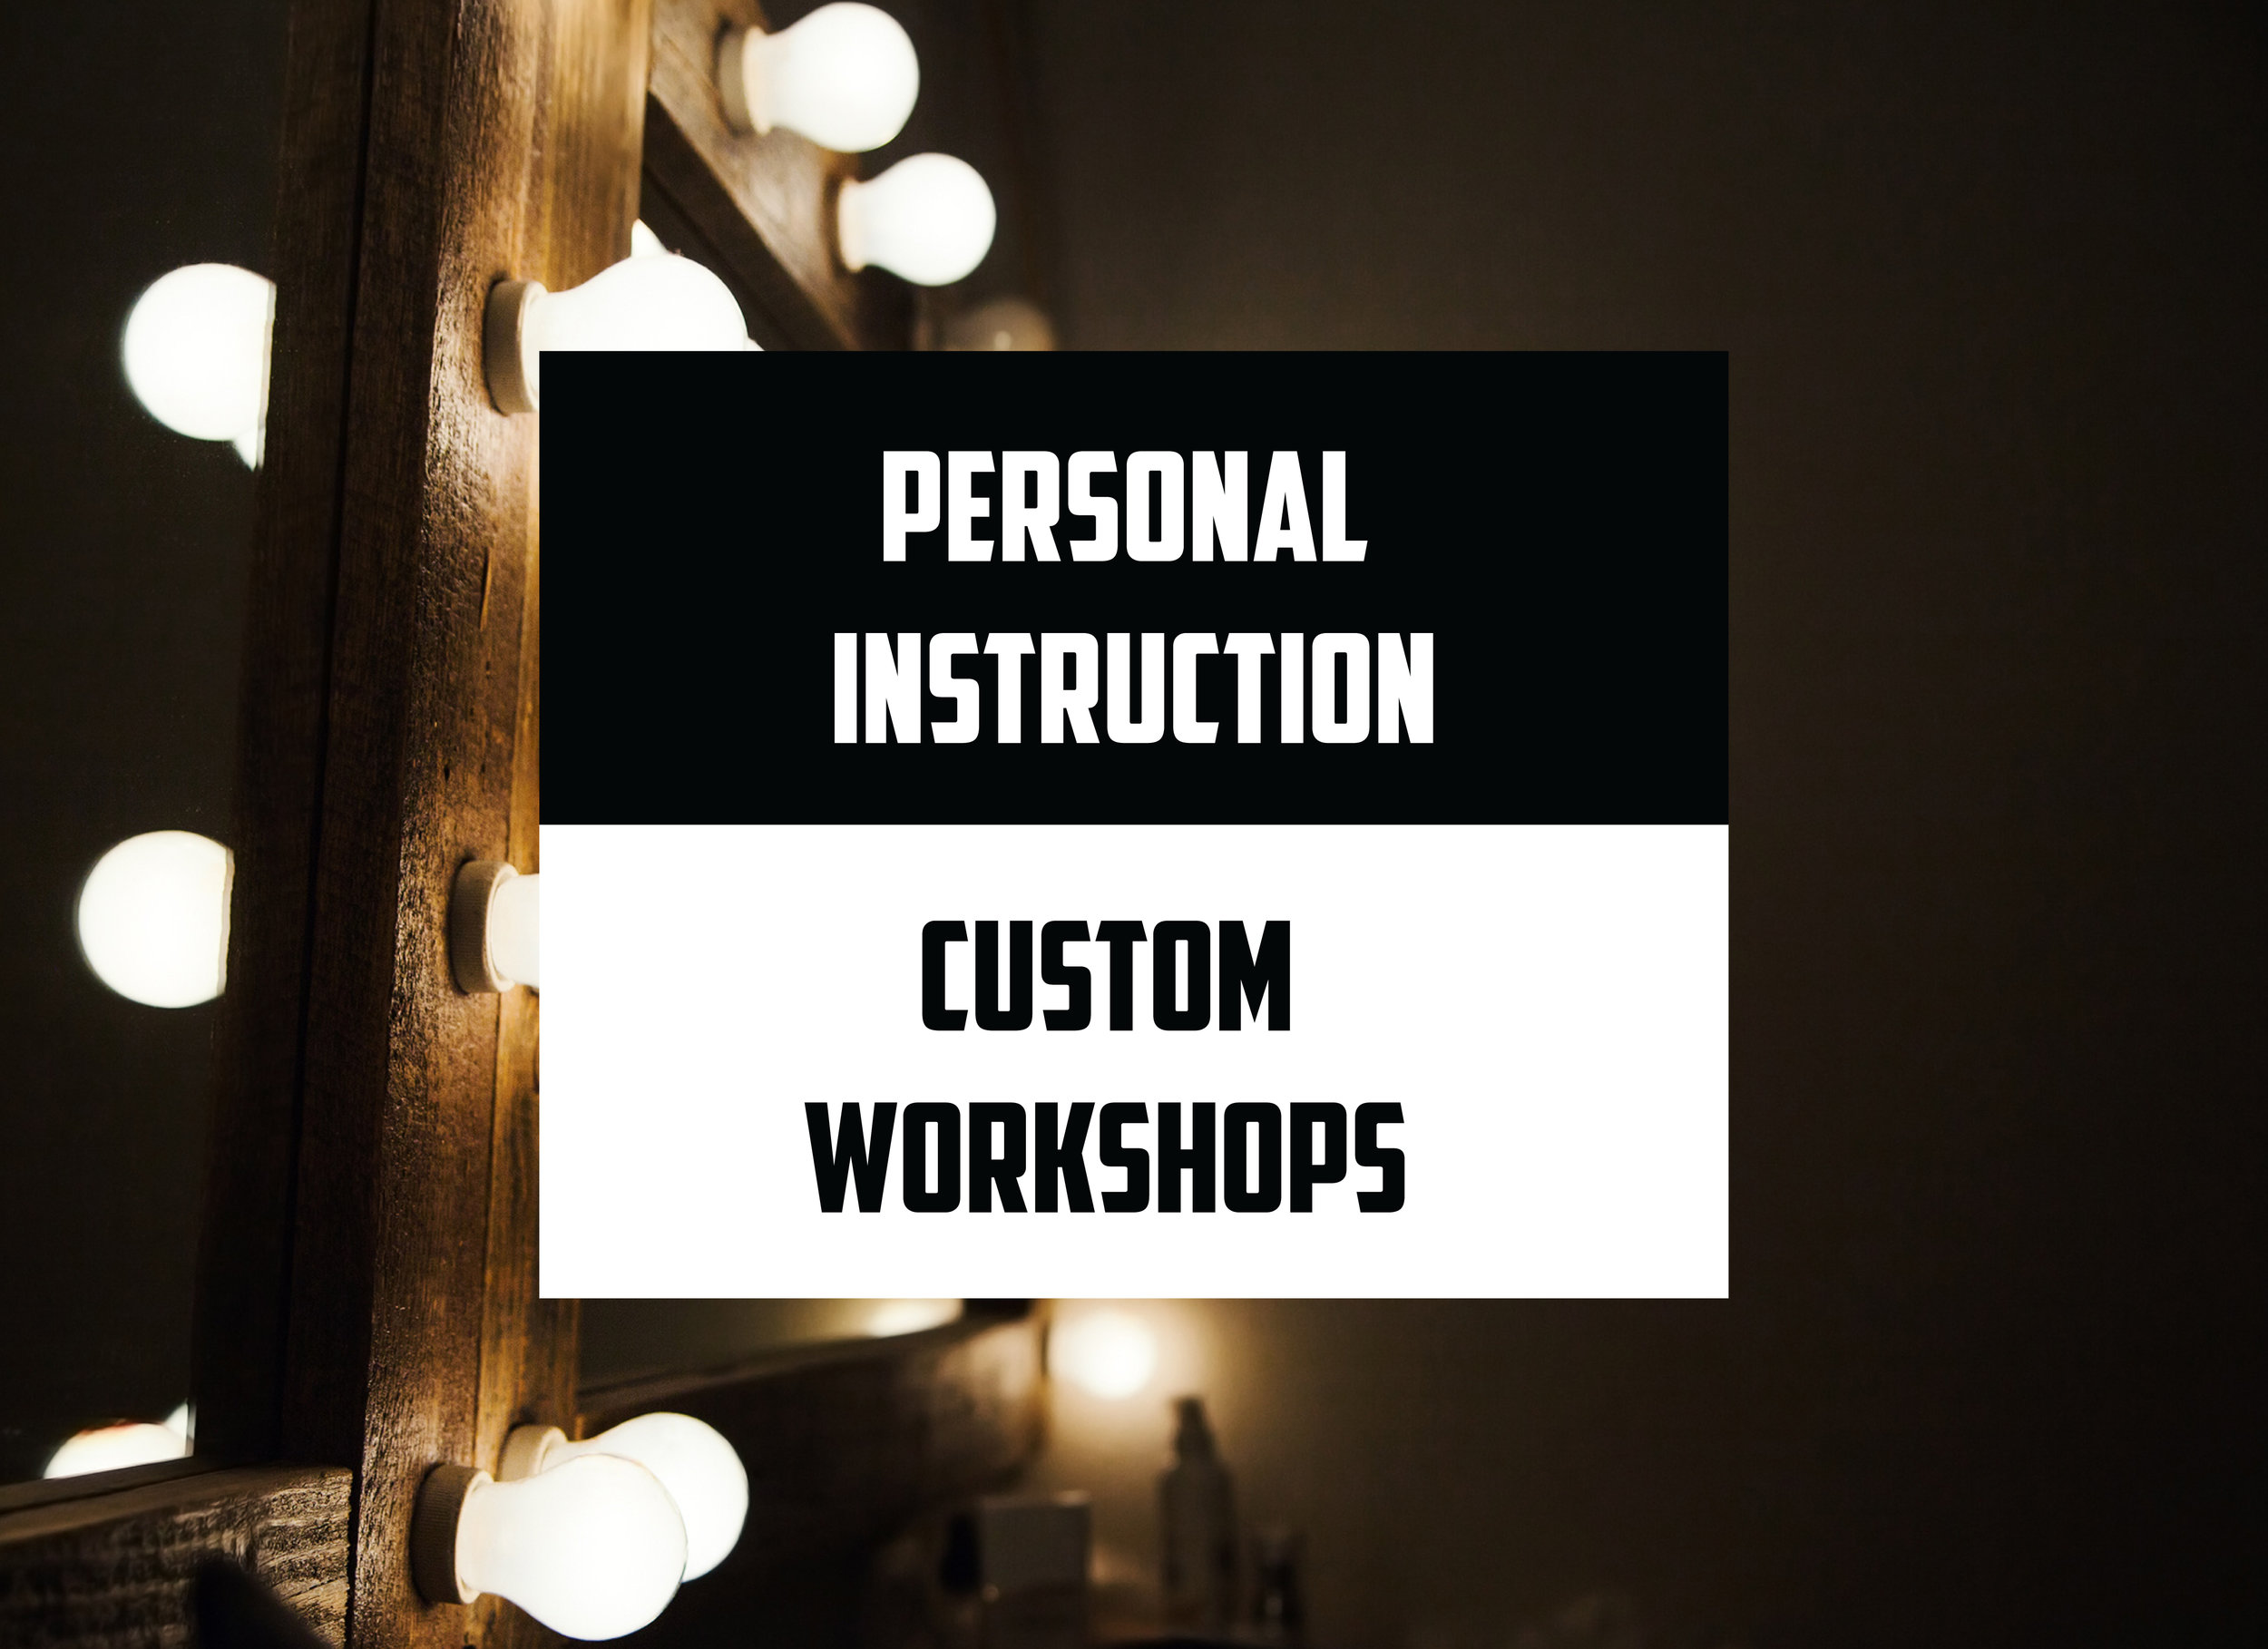 Custom Workshops & Personal Instruction